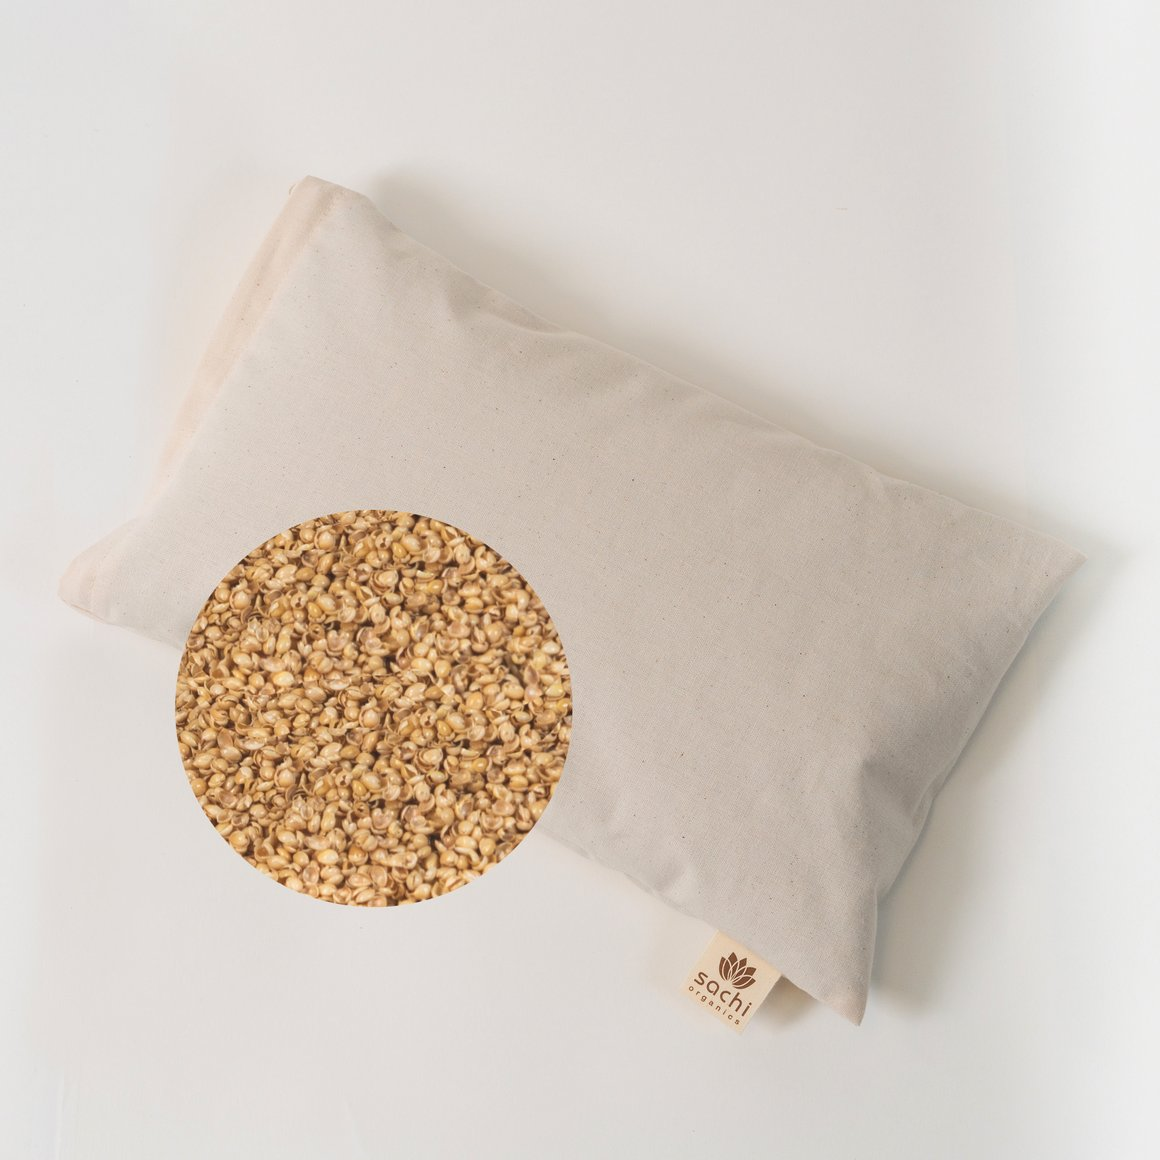 Sachi Organics Buckwheat Or Millet Pillow The Natural